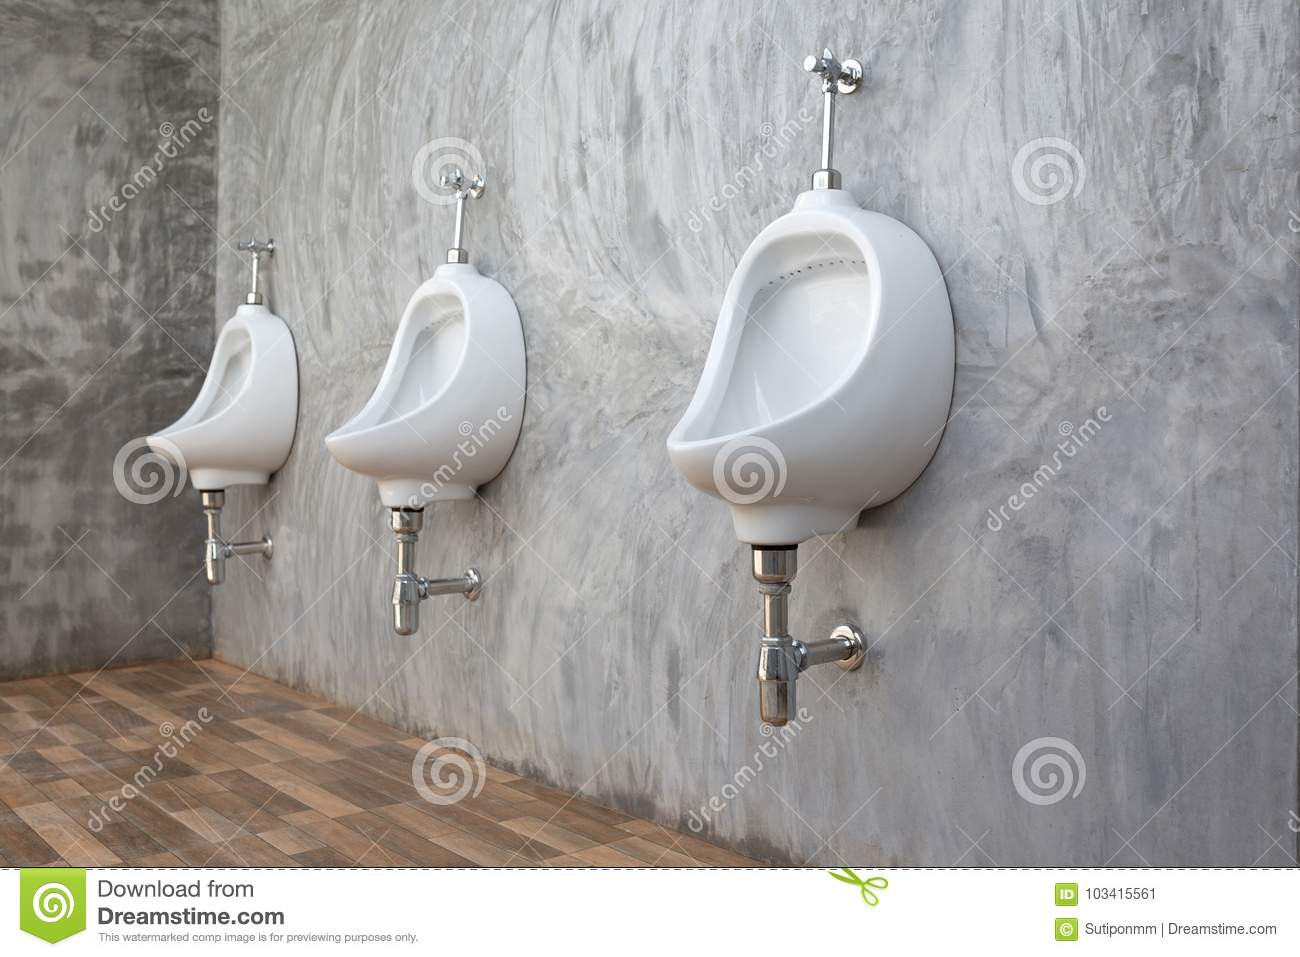 Male urinal sanitary ware in office modern loft